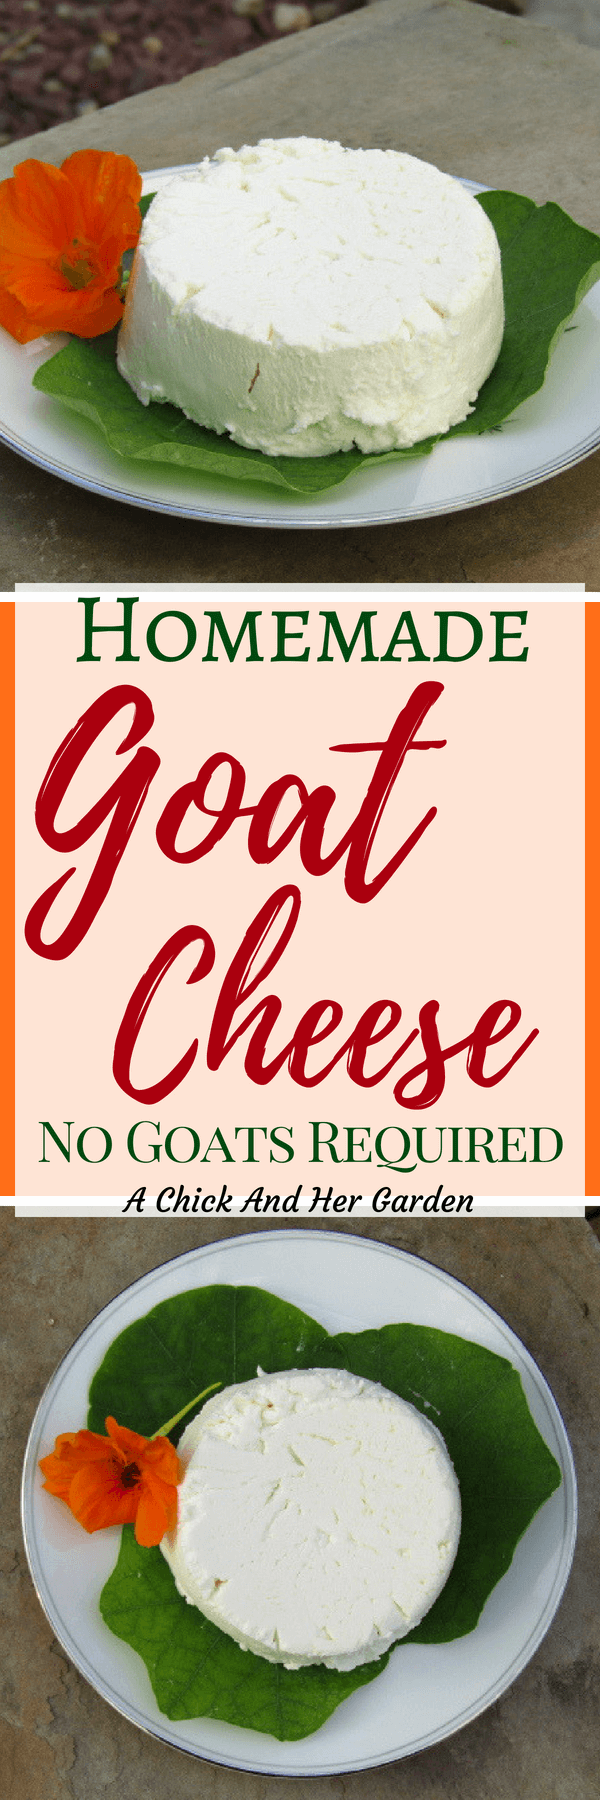 I'm in love with goat cheese! I've always wanted to learn how to make goat cheese and am so glad I finally tried this! It was so easy! #makecheese #goatcheese #recipesfromscratch #goatmilkrecipes #achickandhergarden